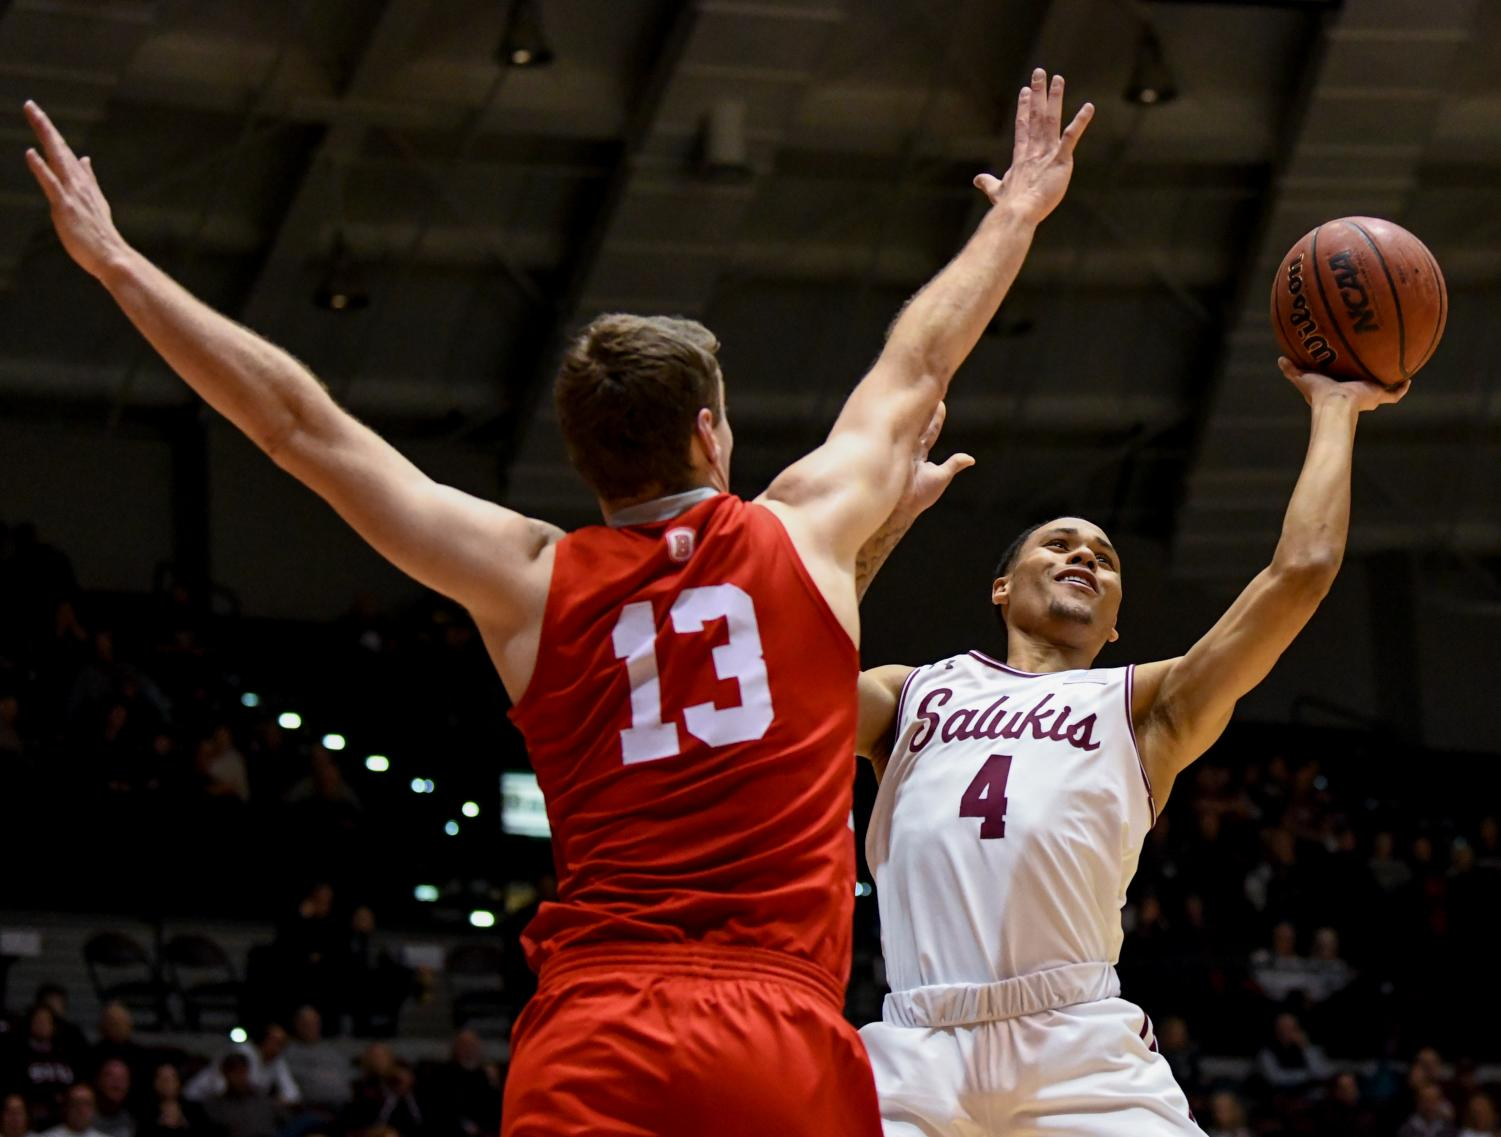 Southern Illinois Salukis guard Eric McGill attempts to get the ball past Bradley Braves forward Luuk van Bree on Sunday, Jan. 20, 2019, during the Bradley Braves 57-54 win over the Southern Illinois Salukis at SIU Arena.